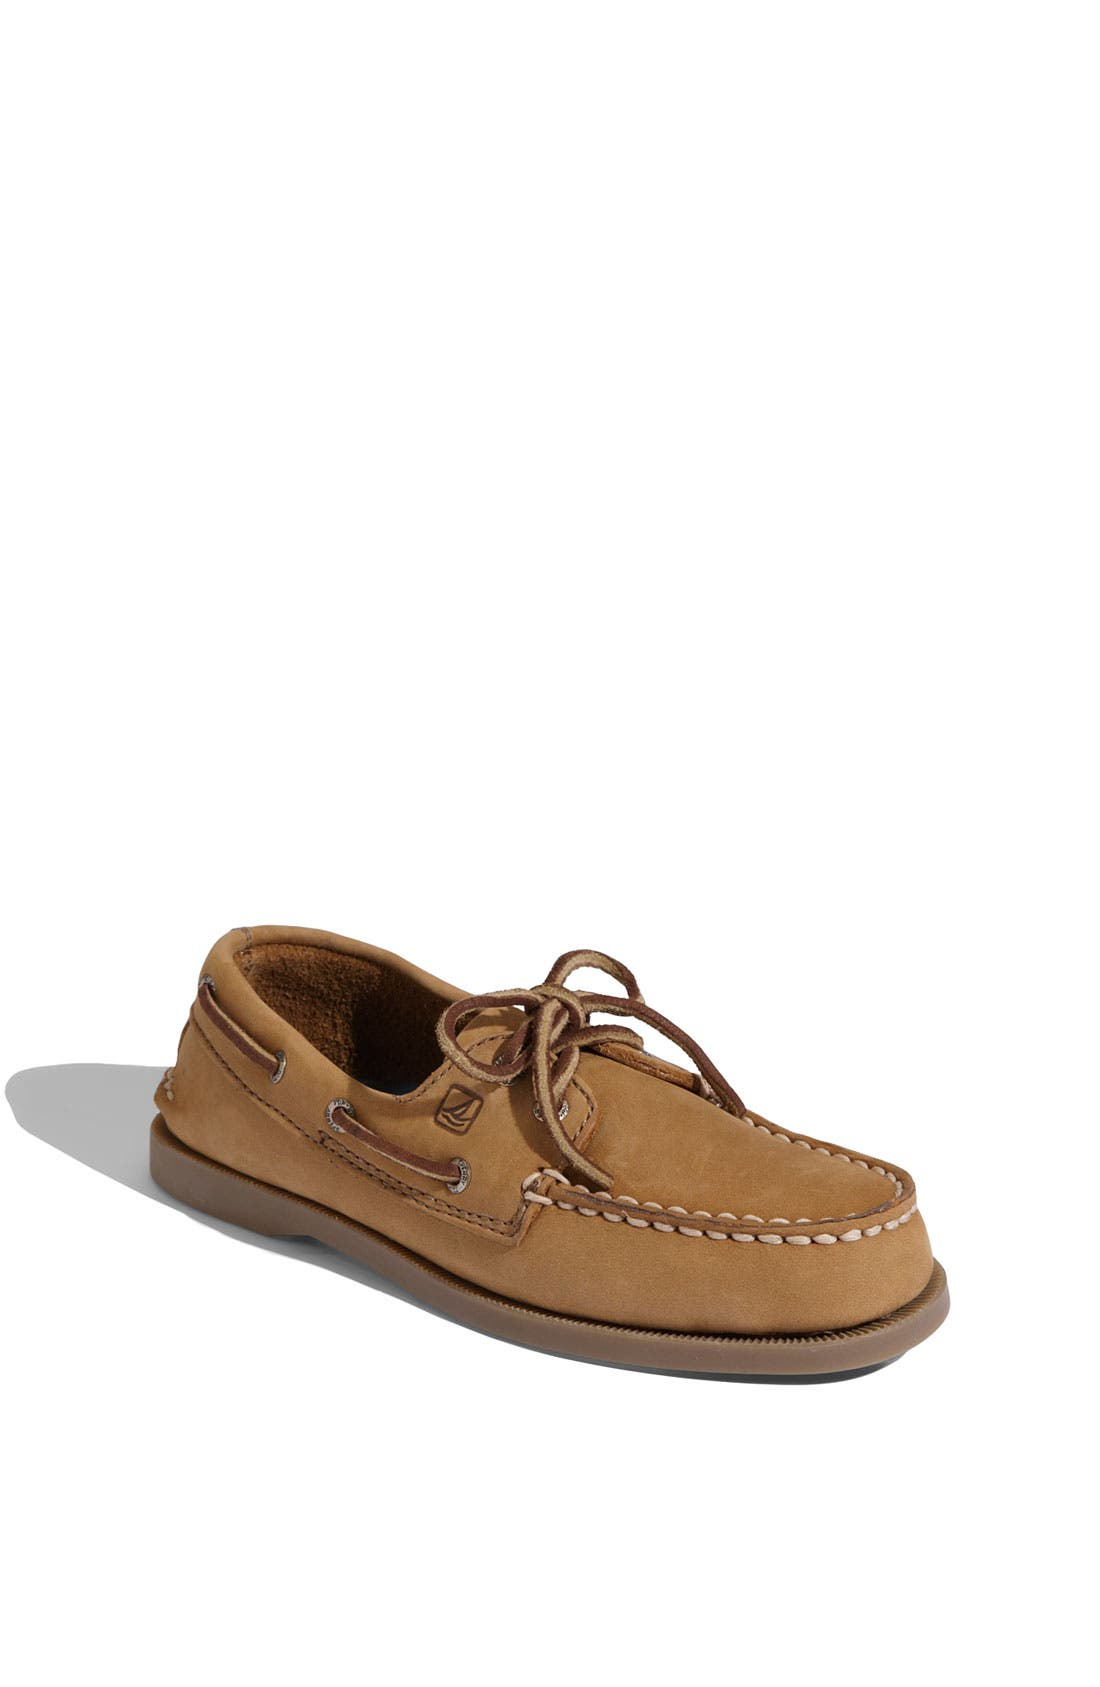 Main Image - Sperry Kids 'Authentic Original' Boat Shoe (Walker & Toddler)